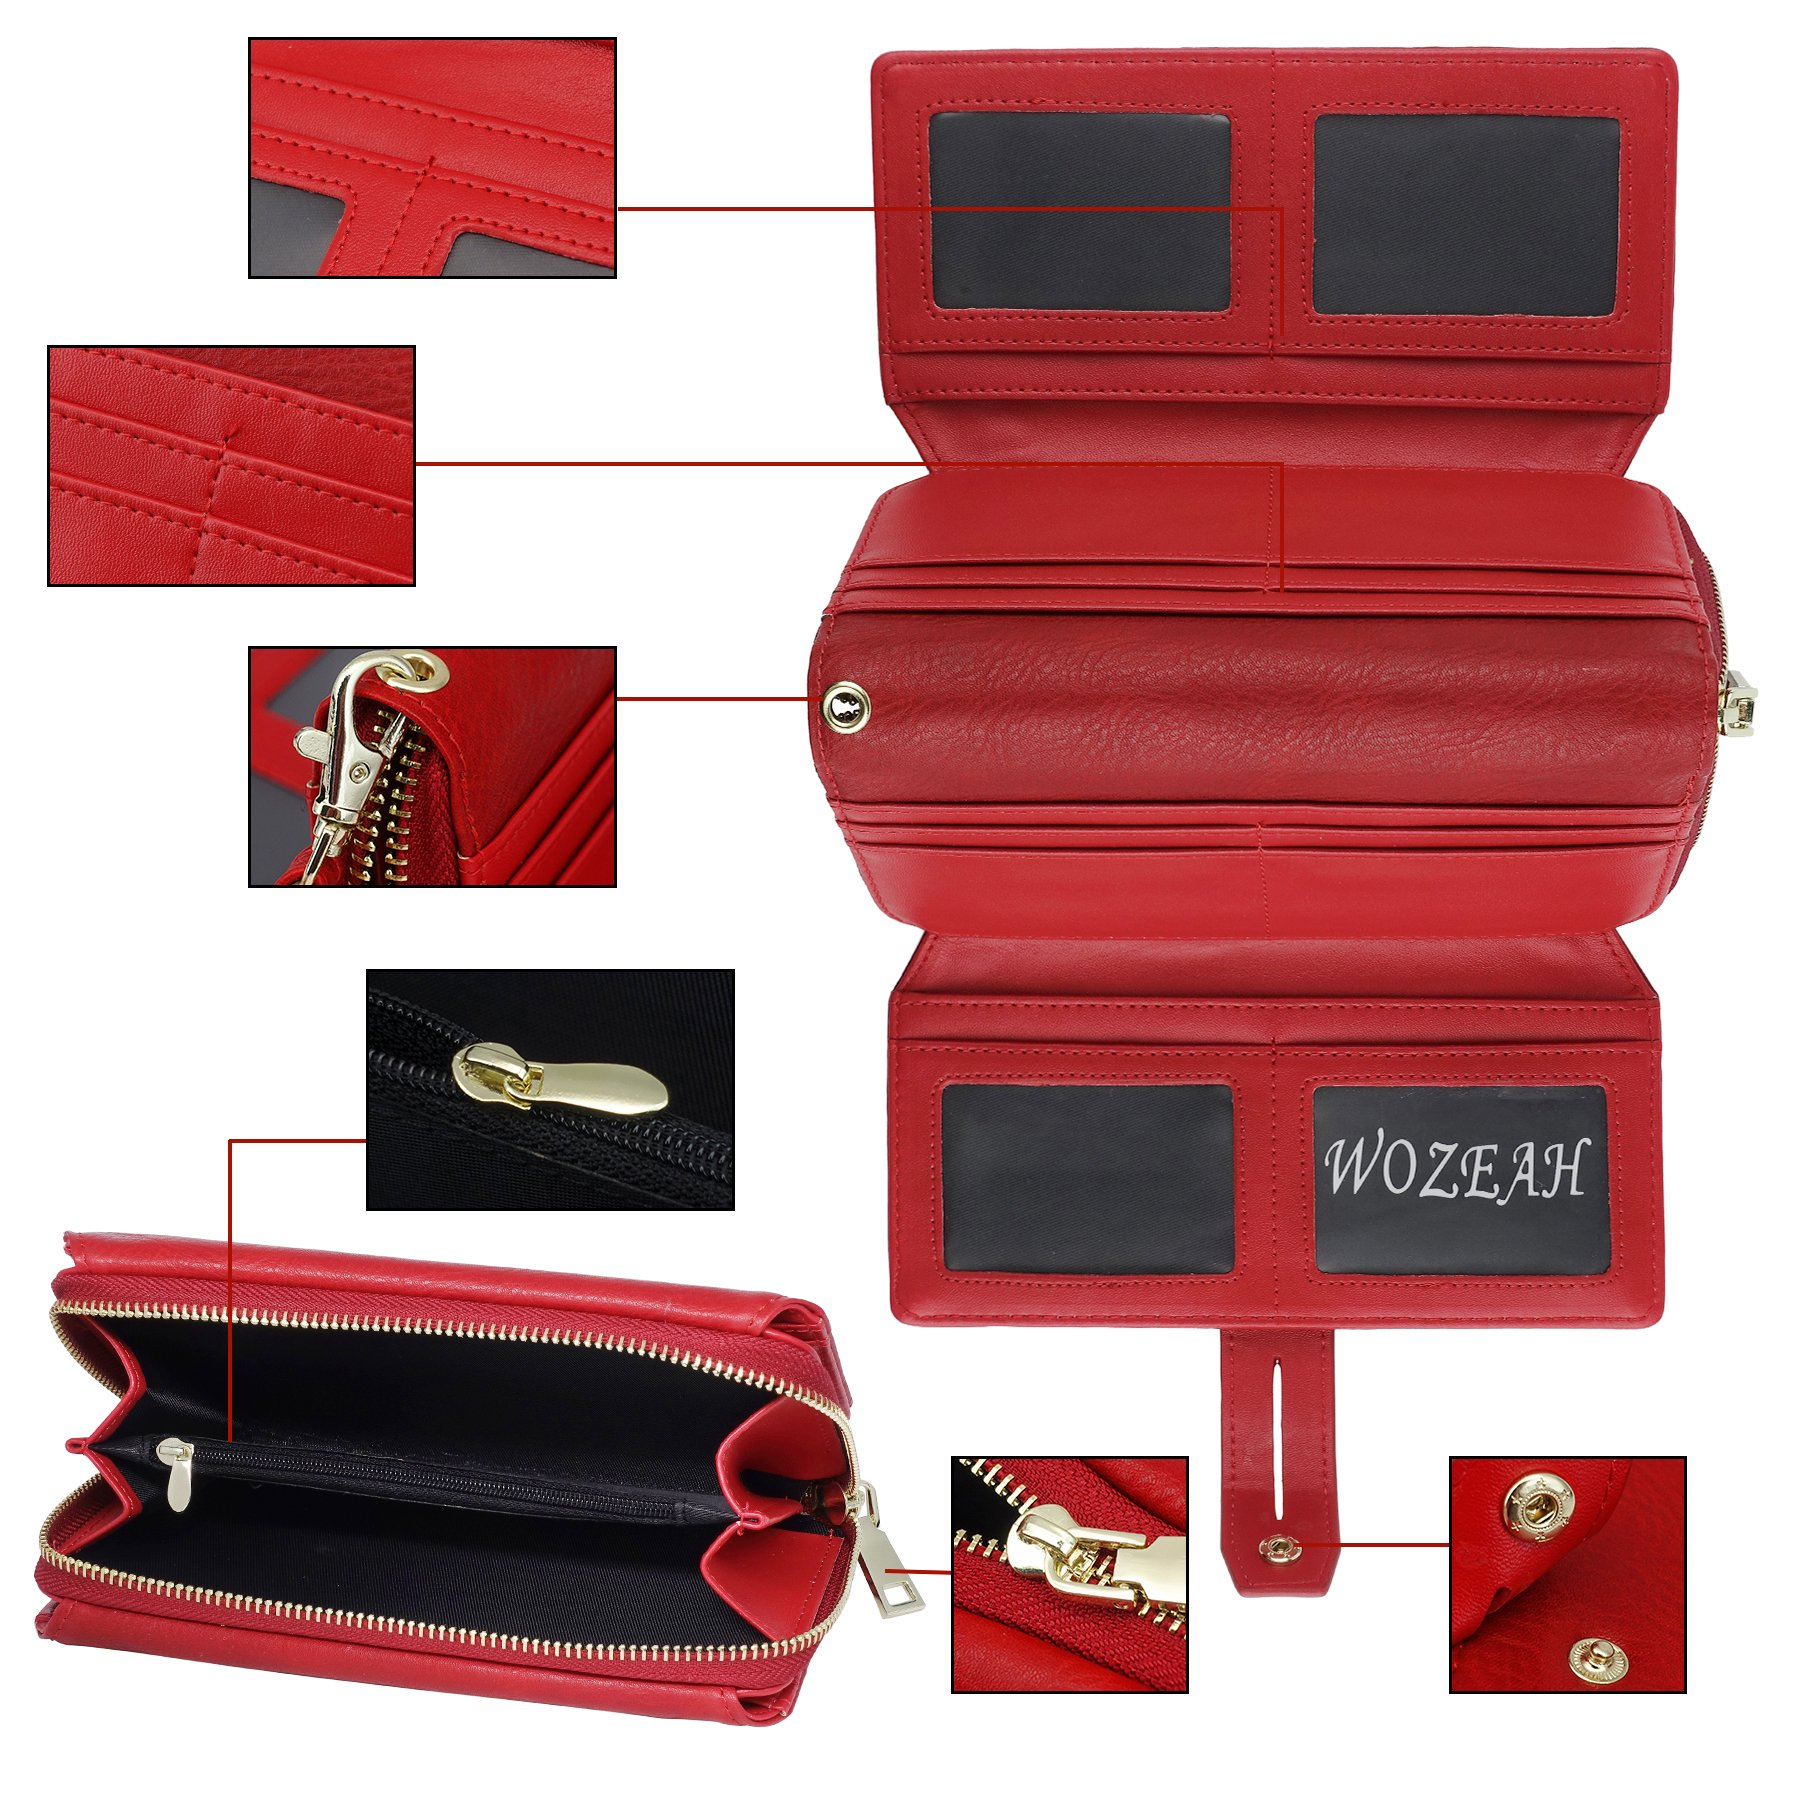 WOZEAH Women's PU Leather RFID Large Capacity Long Wallet Clutch Pures handbags Credit Card Holder Organizer Ladies Purse (red) by WOZEAH (Image #5)